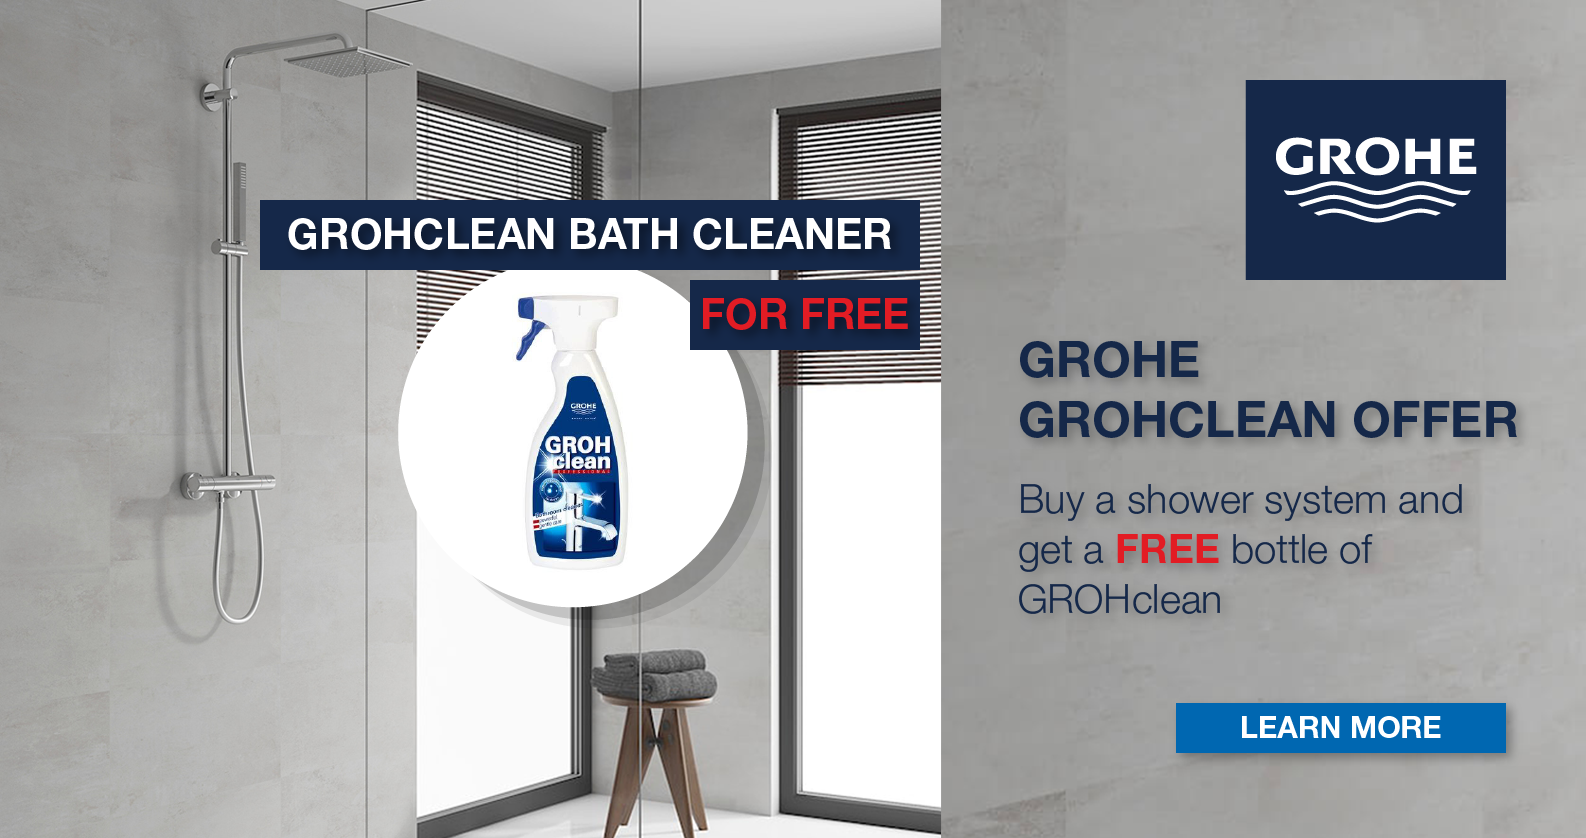 GROHE GROHclean Promotion at xTWOstore